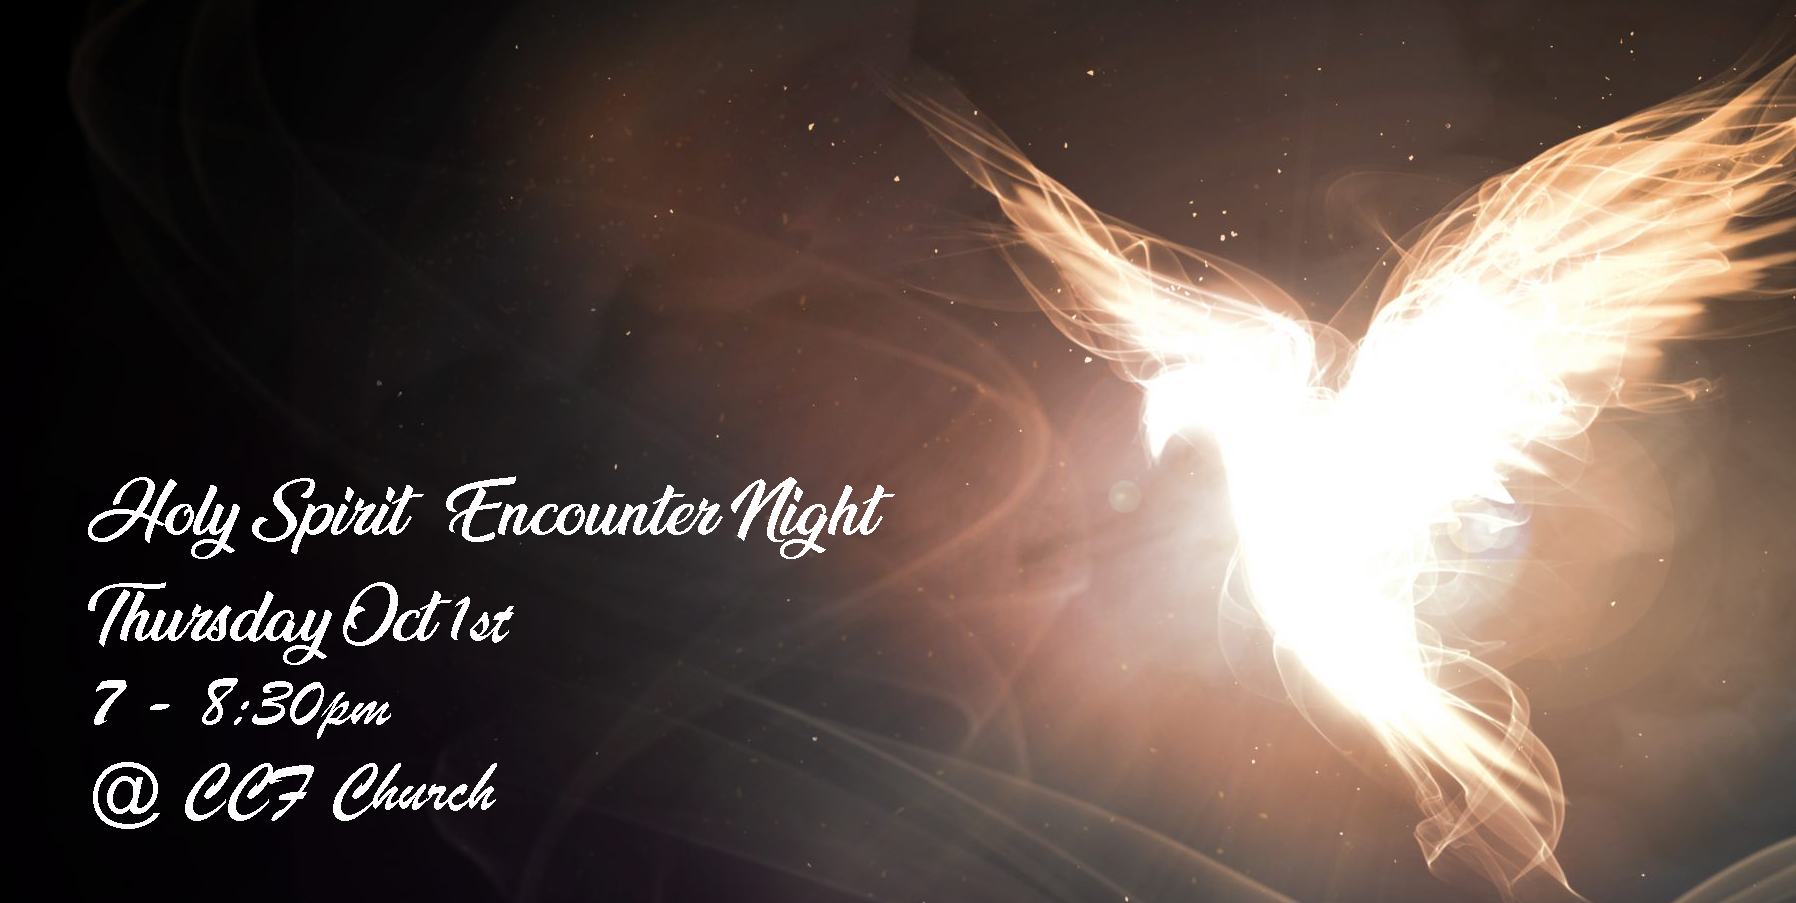 Holy-Spirit-encounter-night-FB-image